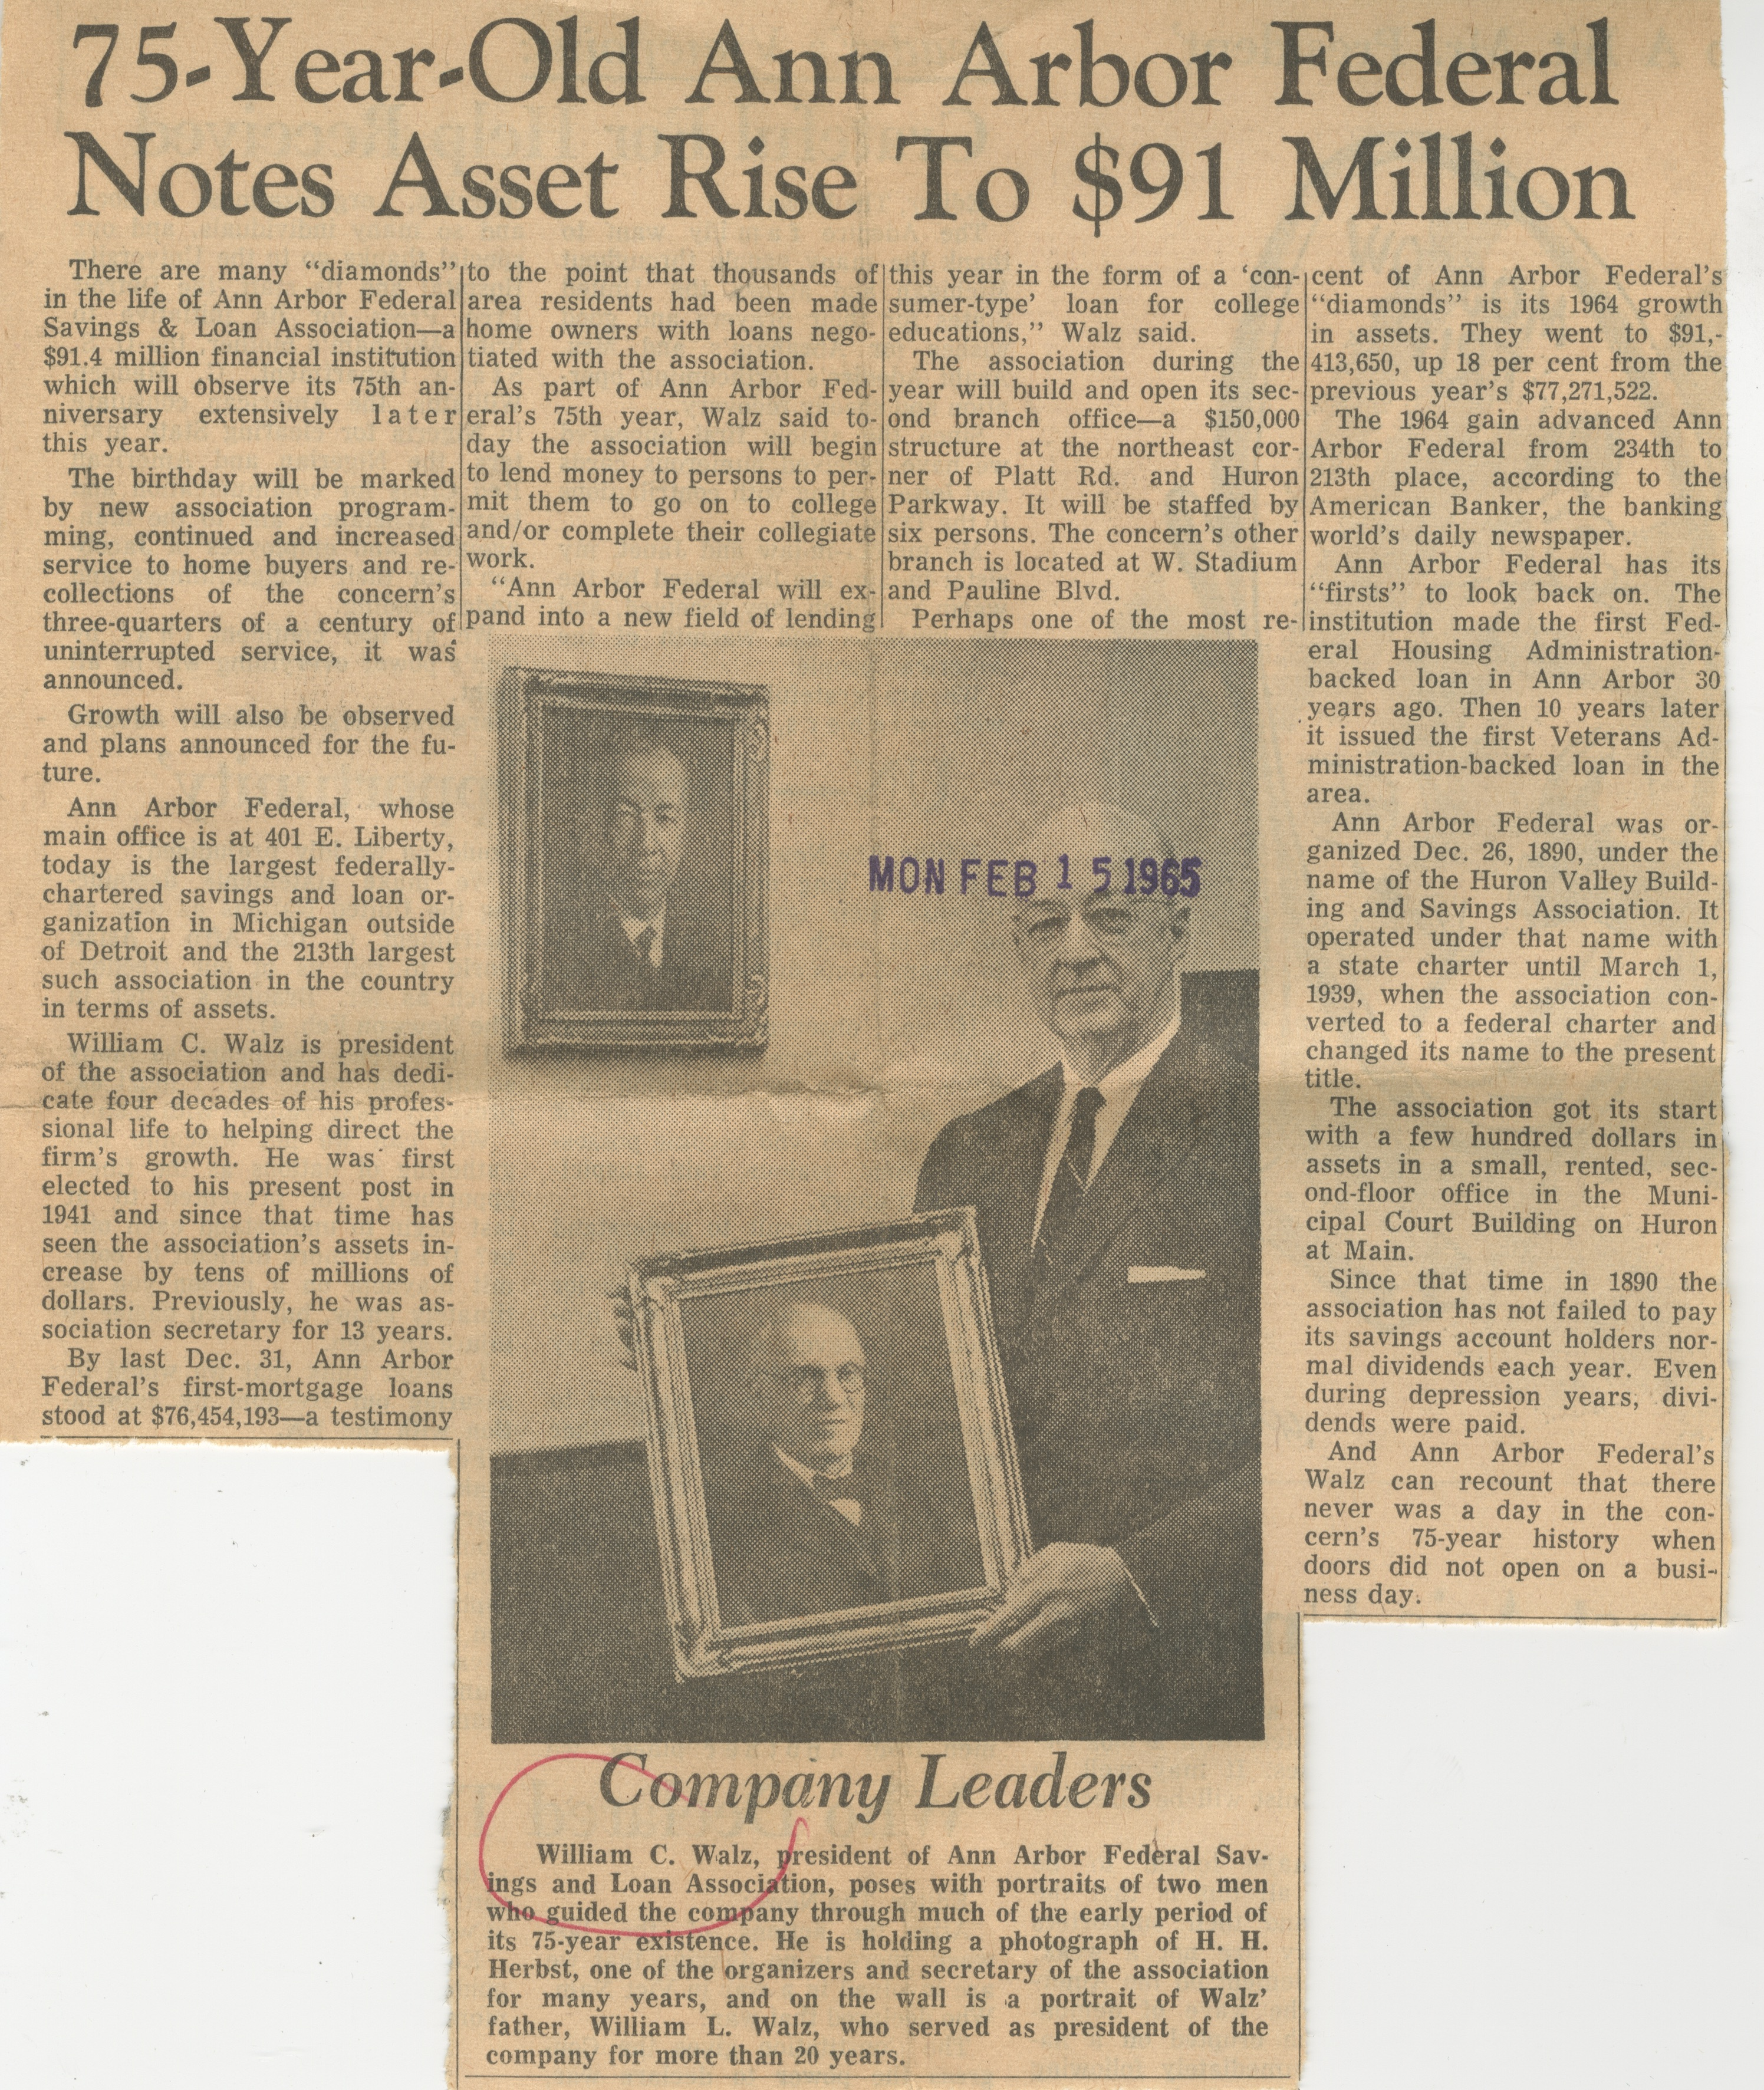 75-Year-Old Ann Arbor Federal Notes Asset Rise To $91 Million image